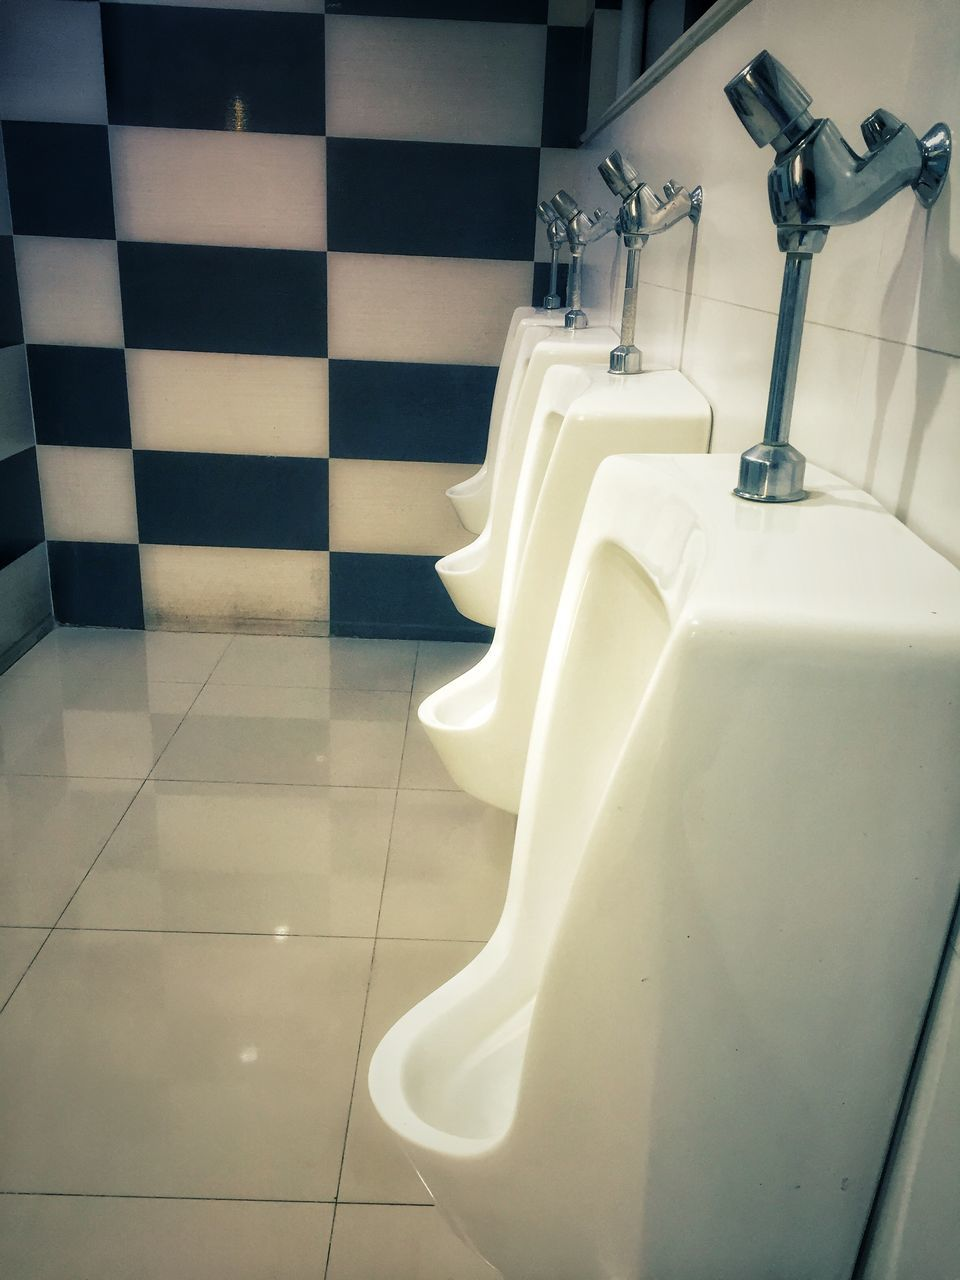 bathroom, flooring, tile, indoors, hygiene, toilet, white color, urinal, no people, tiled floor, domestic room, domestic bathroom, home, home interior, absence, convenience, white, household equipment, close-up, clean